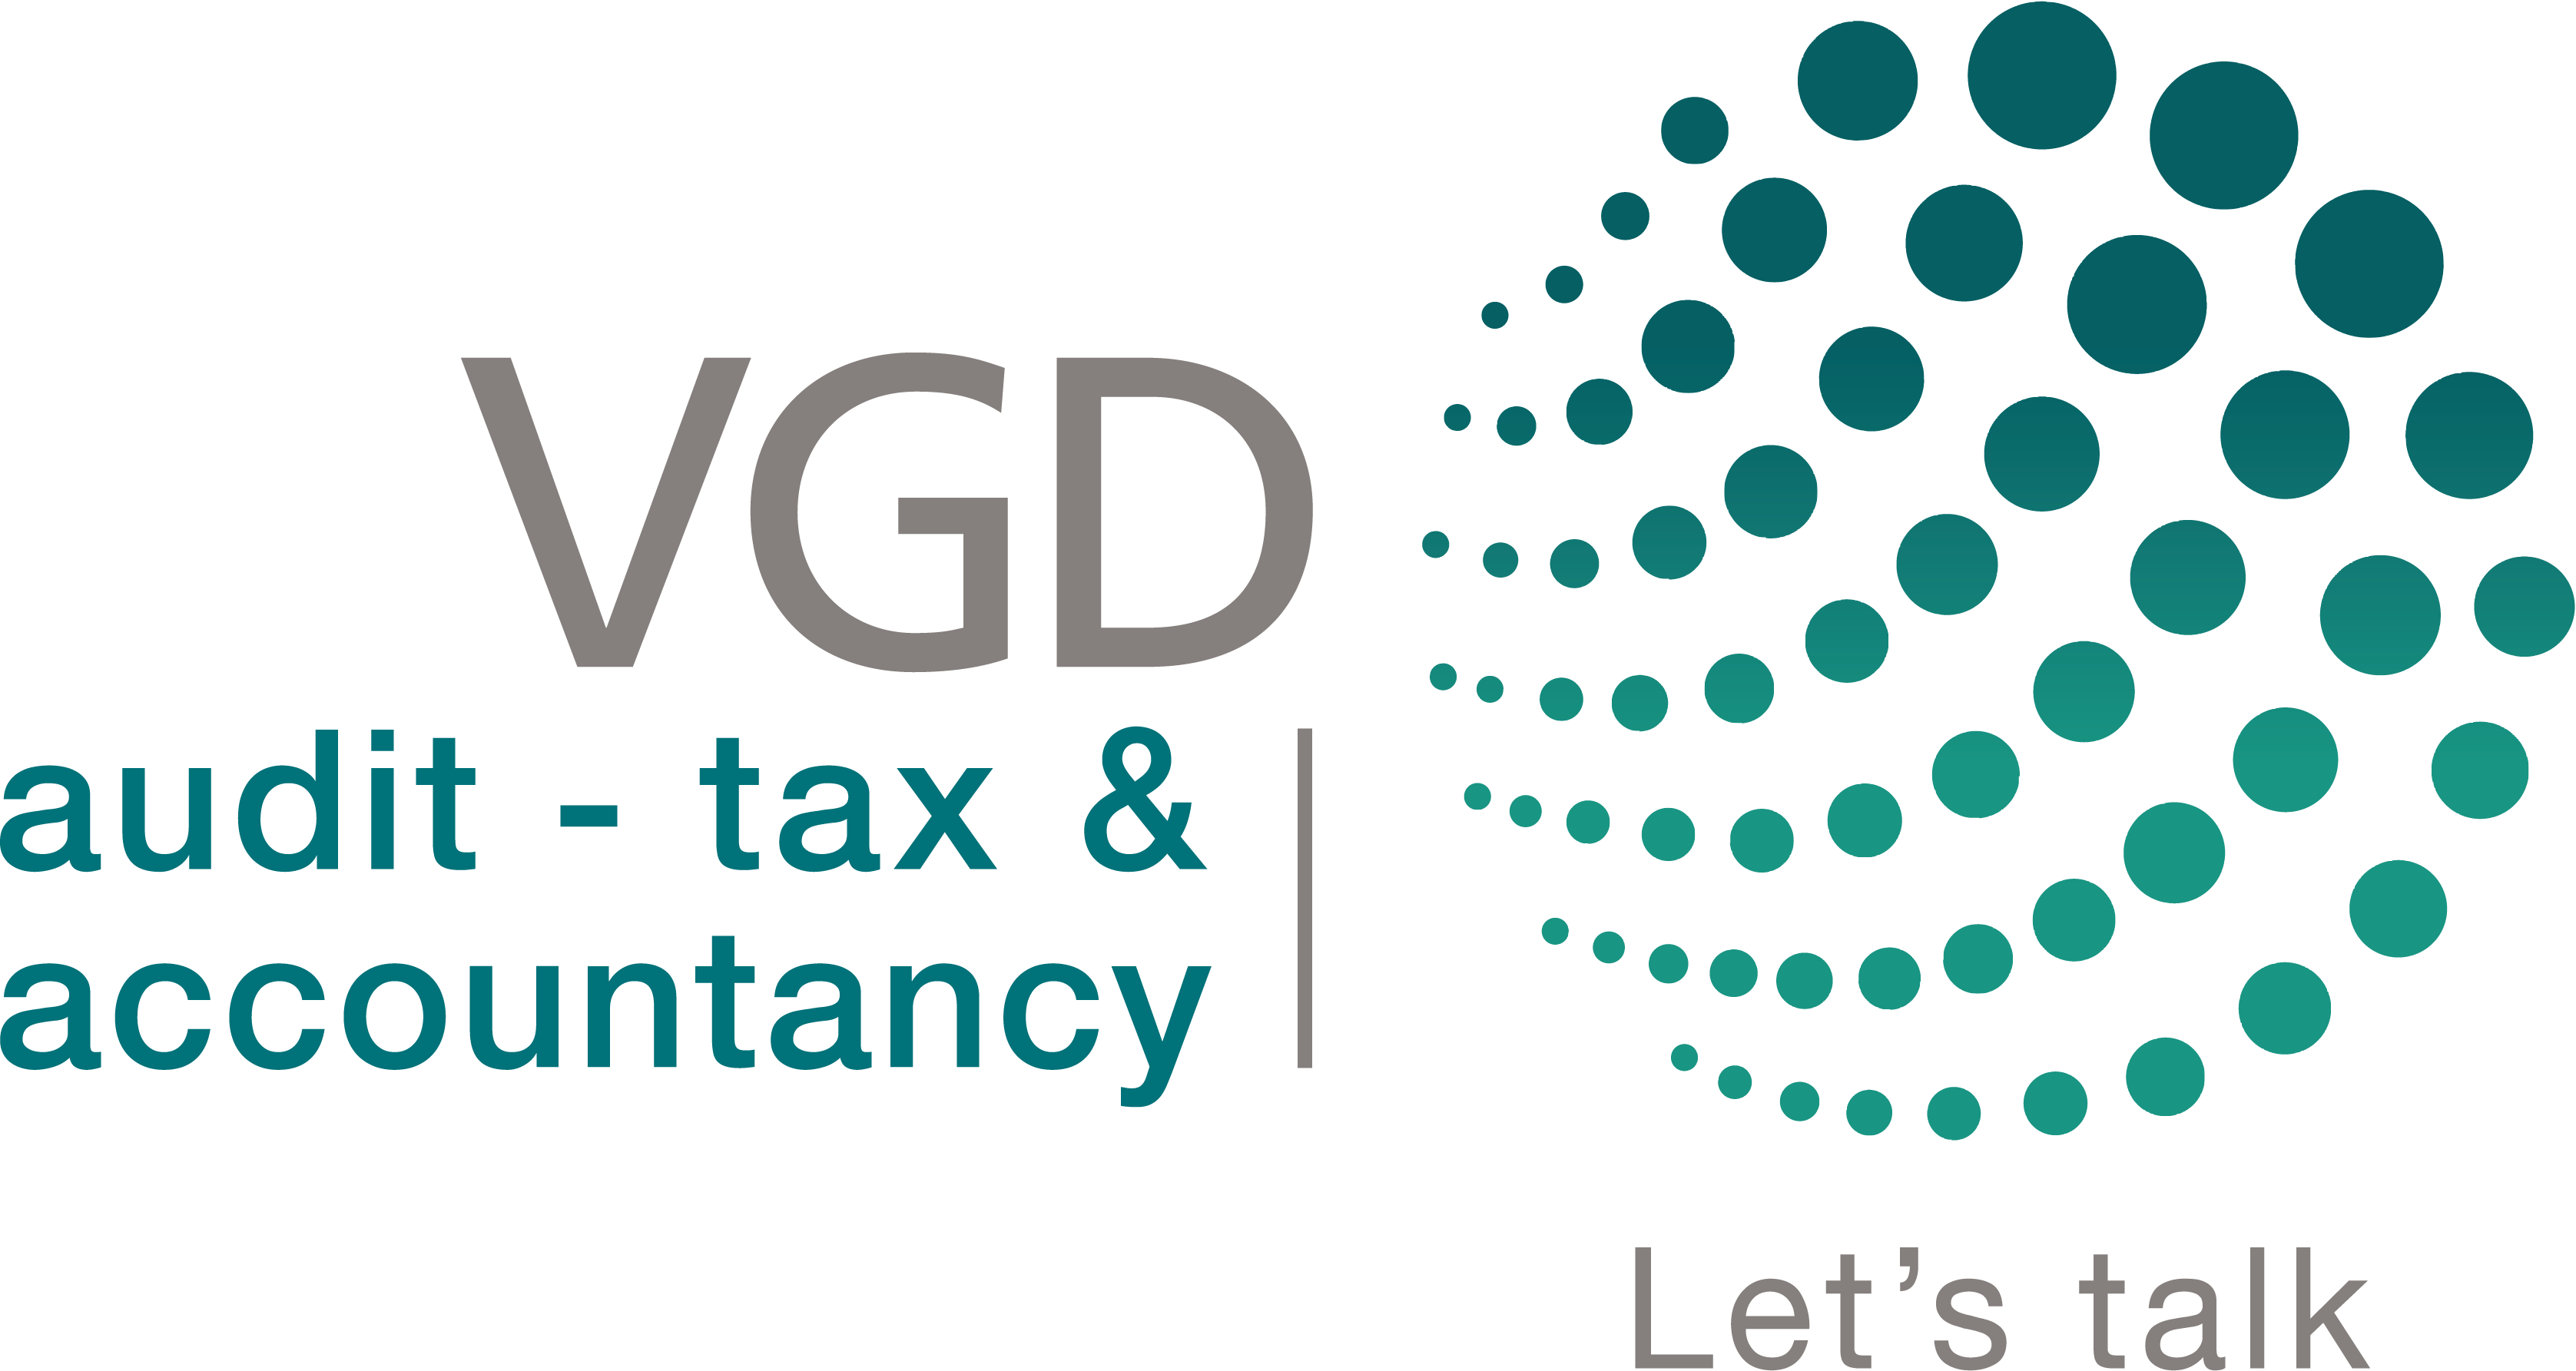 VGD Accountants & Belastingconsulenten